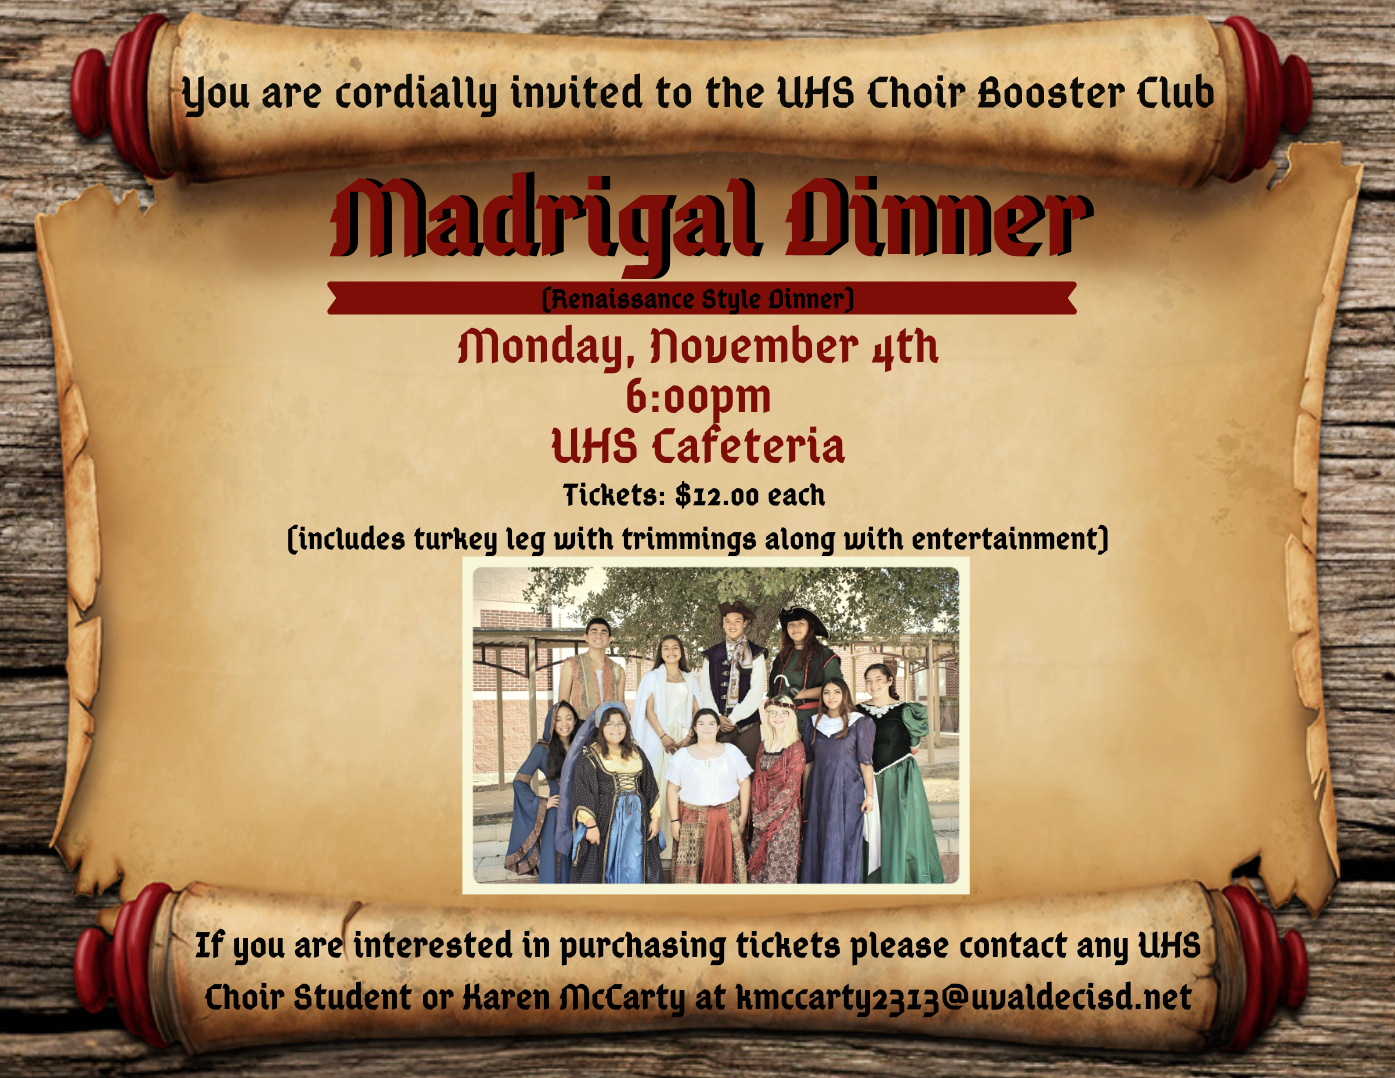 UHS Choir Booster Club: Madrigal Dinner